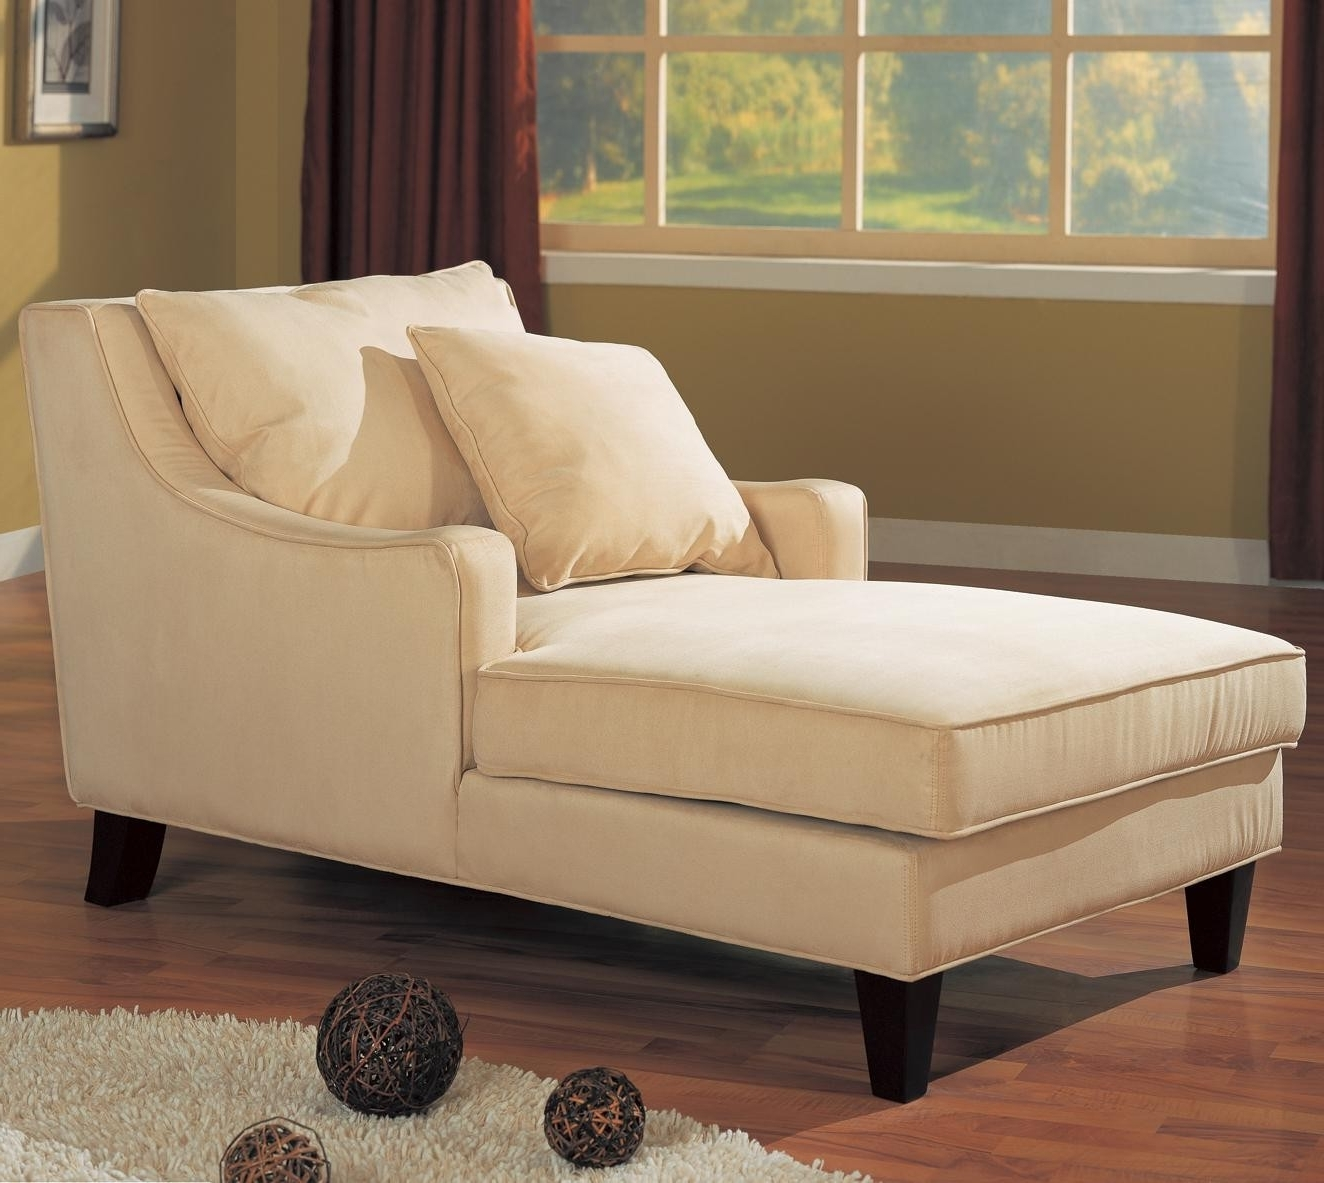 Preferred Sleeper Chaise Lounges Throughout Living Room : Small Chaise Lounge Chair For Small Room Double (View 7 of 15)